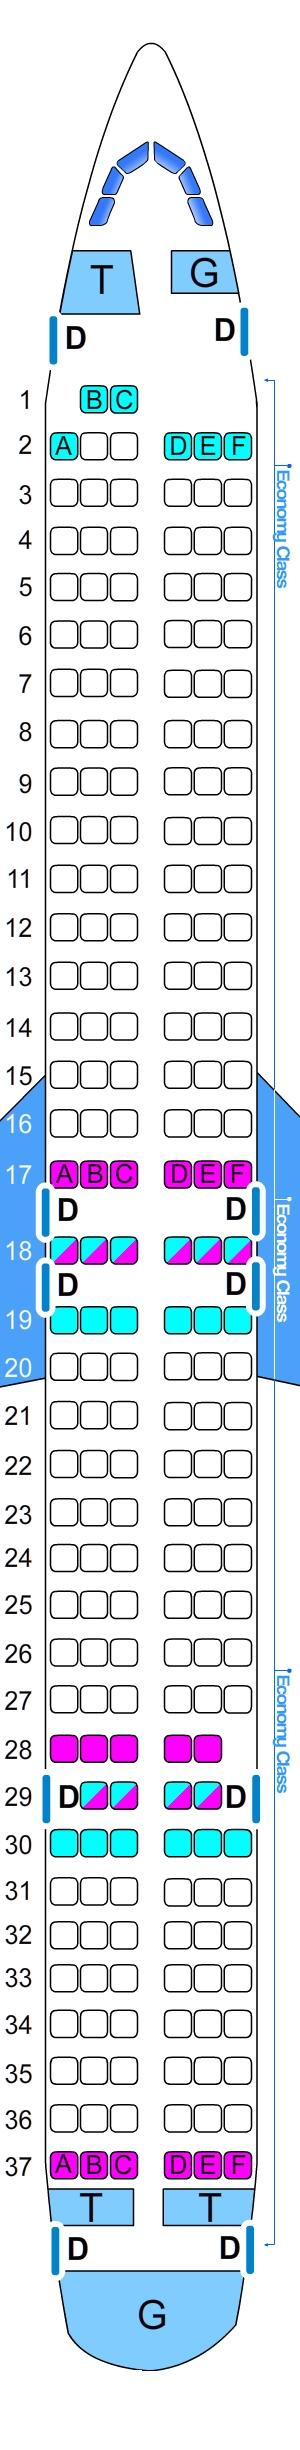 Seat map for Sky Airlines Boeing B737 900 ER